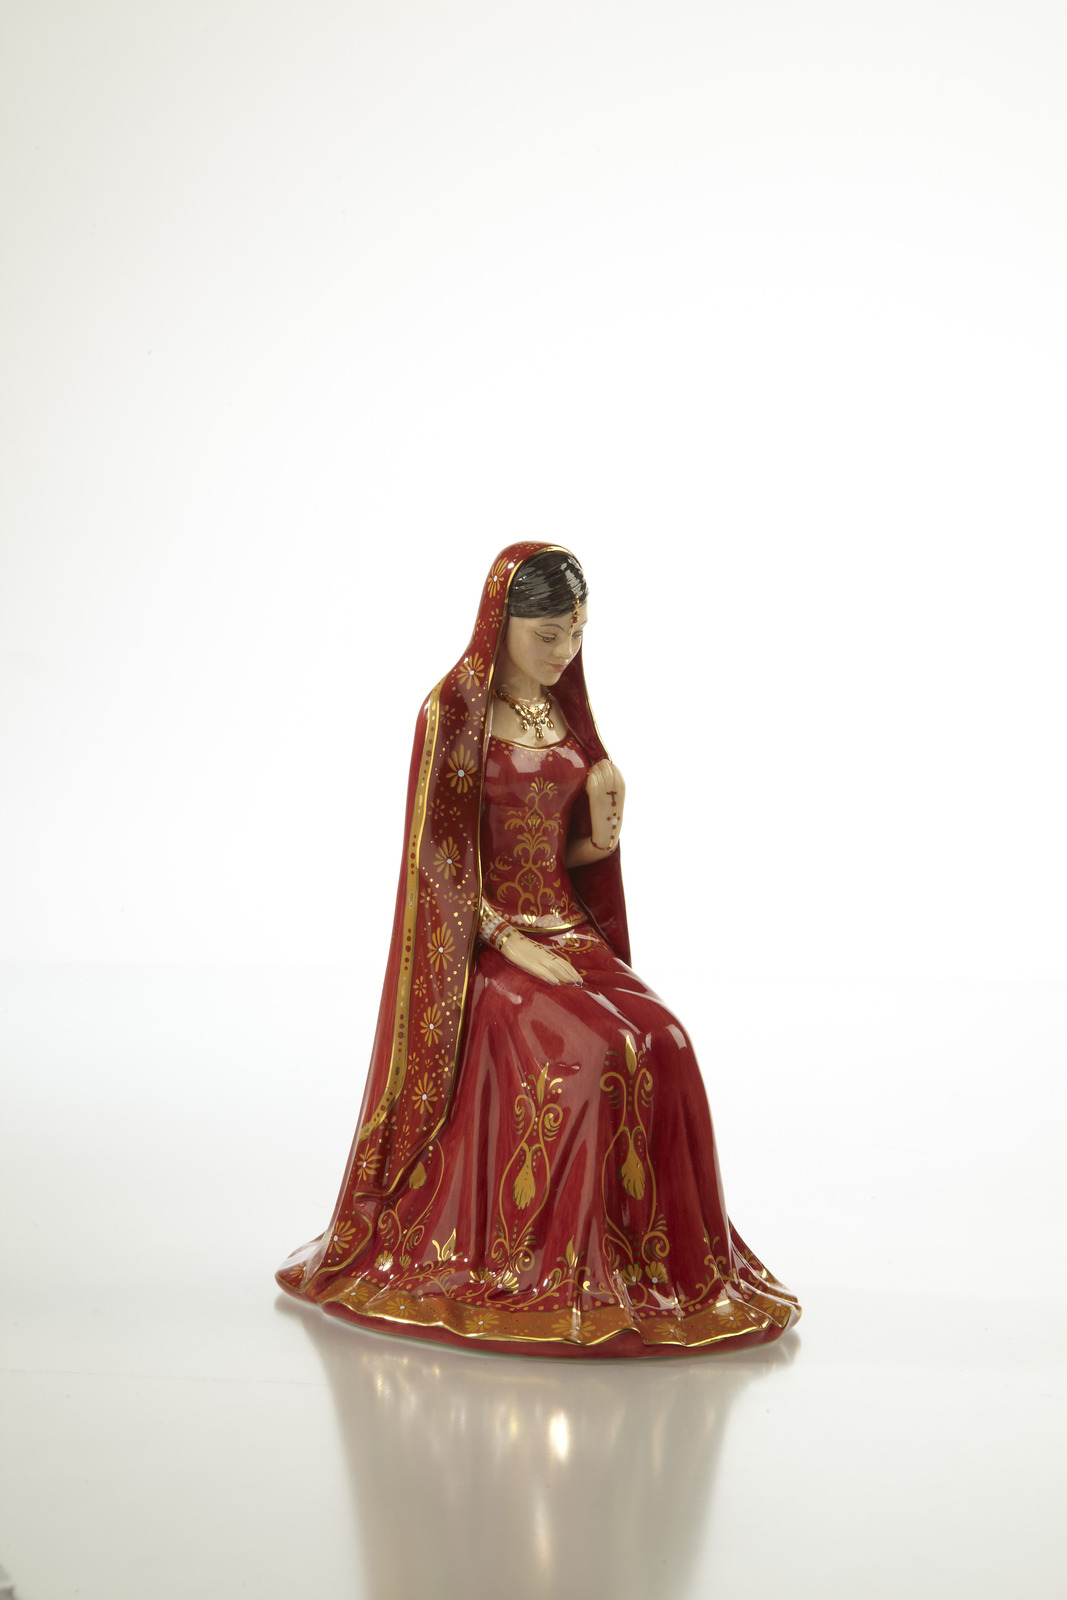 The English Ladies Co Eternal Love In Indian Wedding Dress Figurine NEW IN BOX